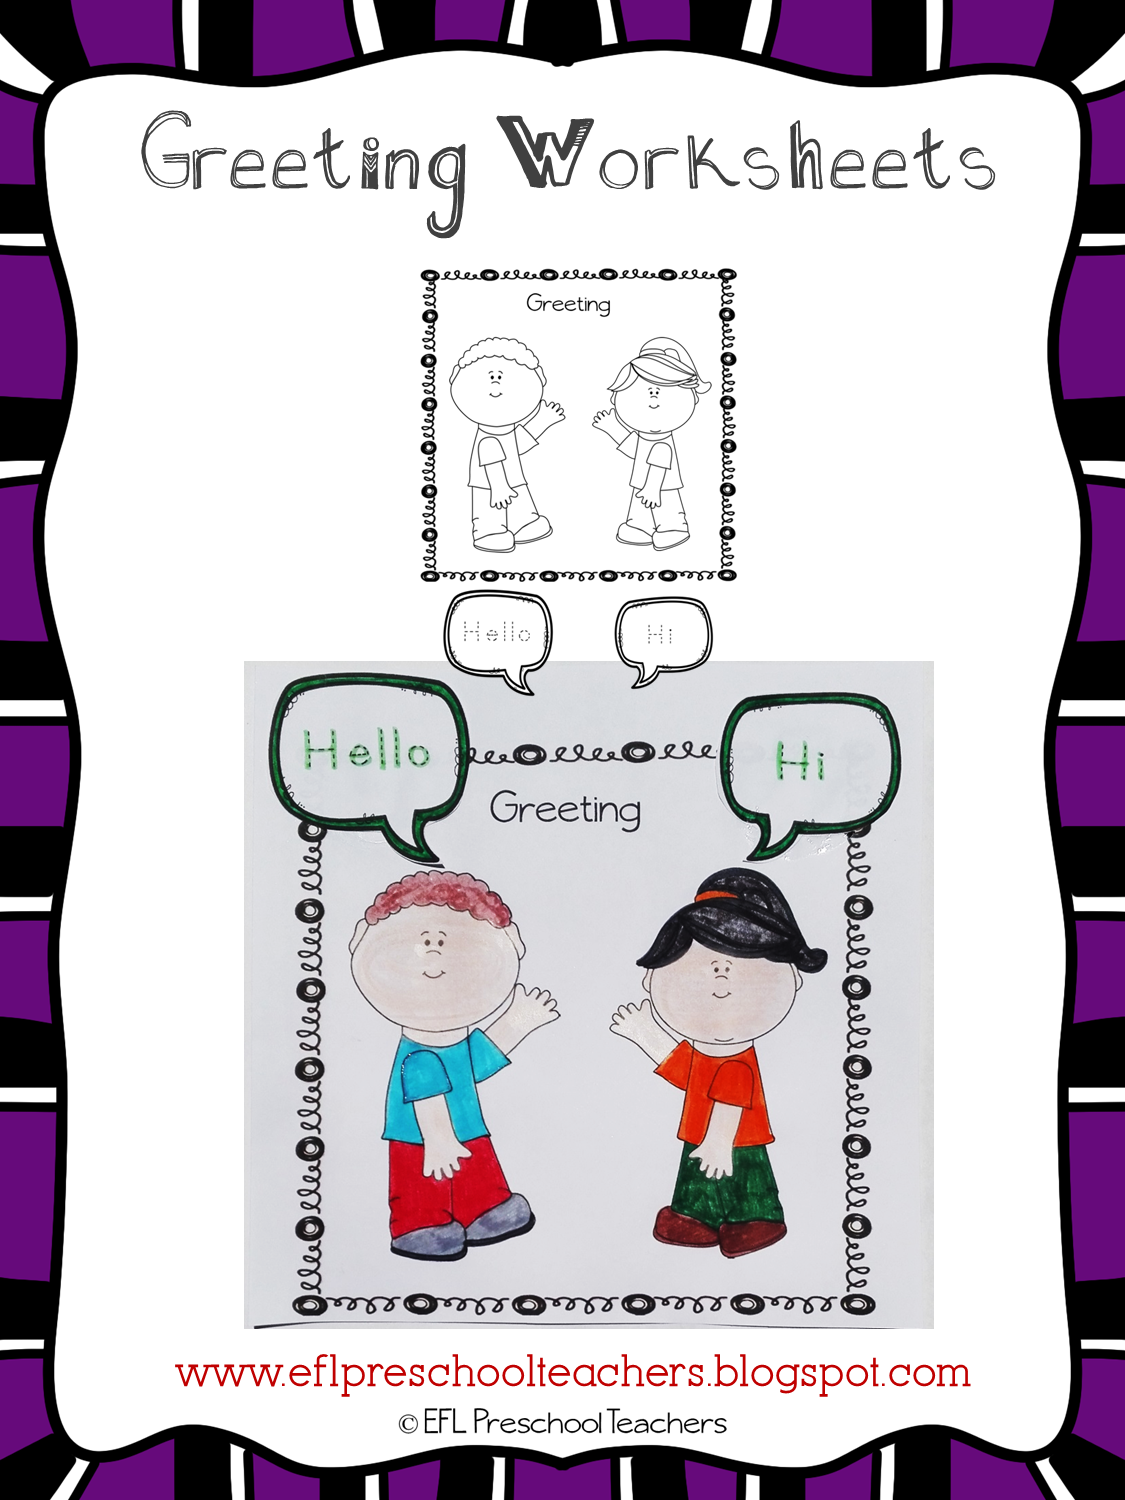 Esl Efl Preschool Teachers Greetings Theme Resources For Ell